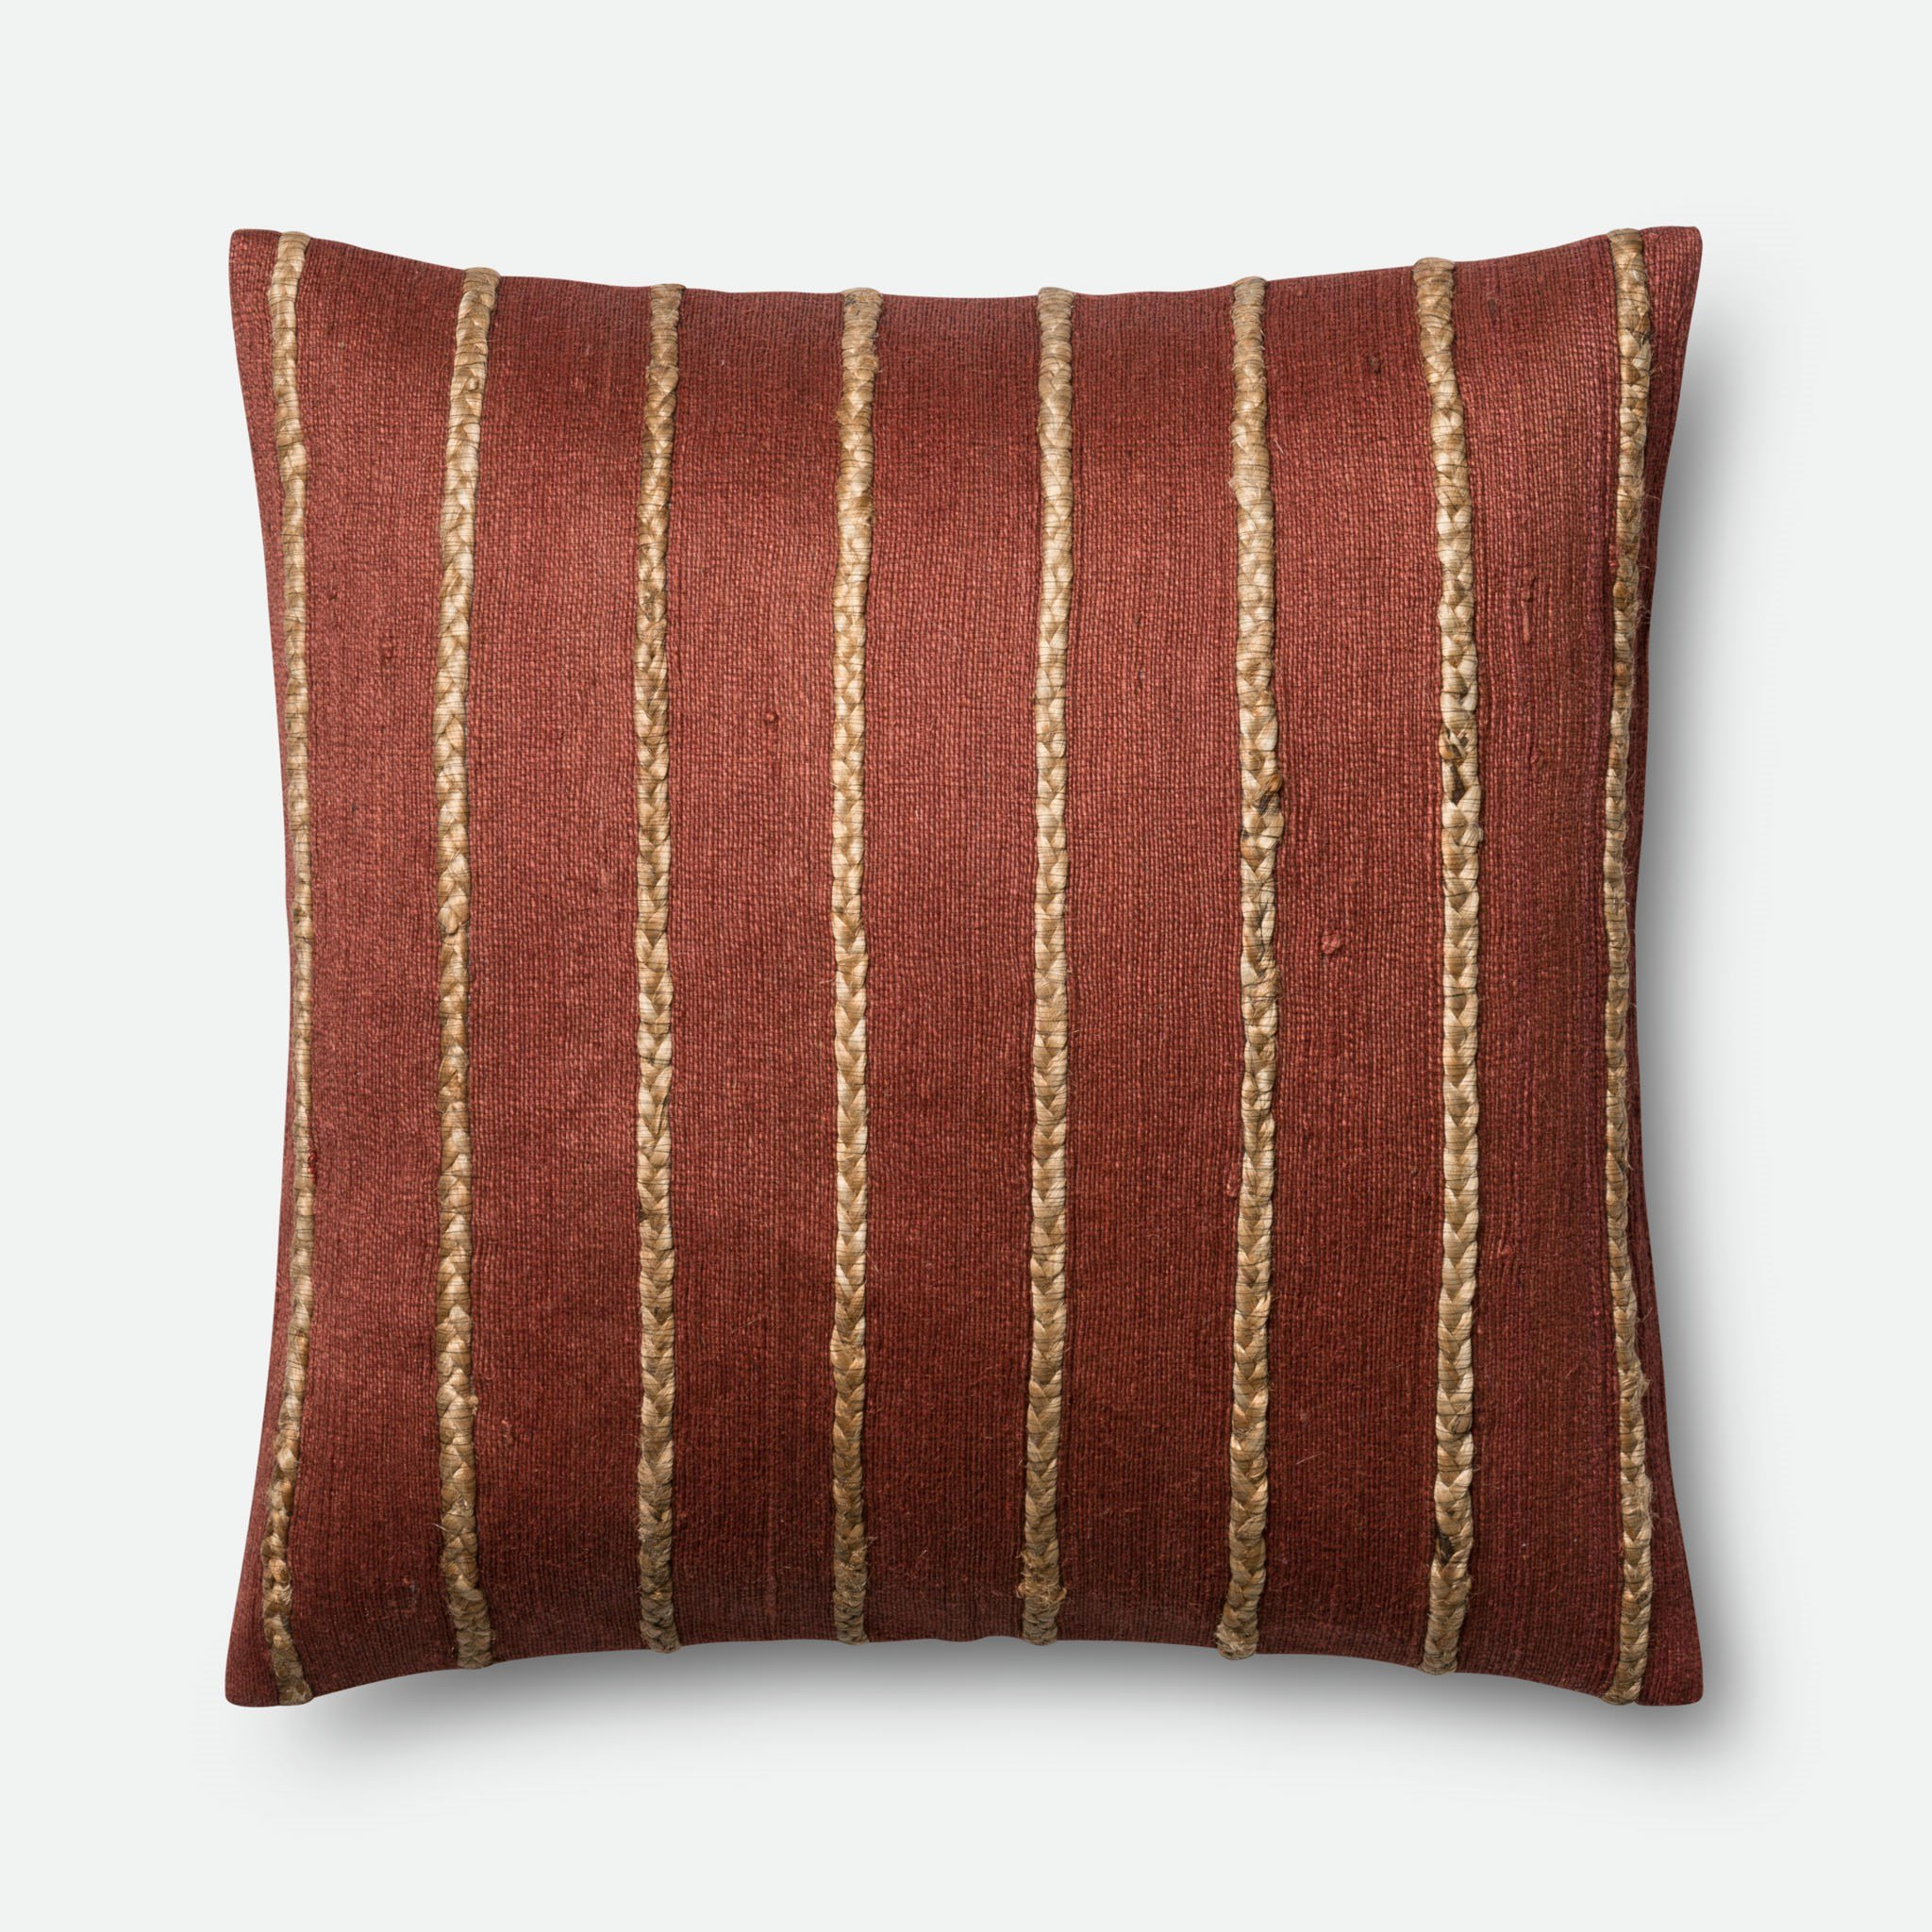 Loloi P0443 Jute and Cotton Pillow Cover